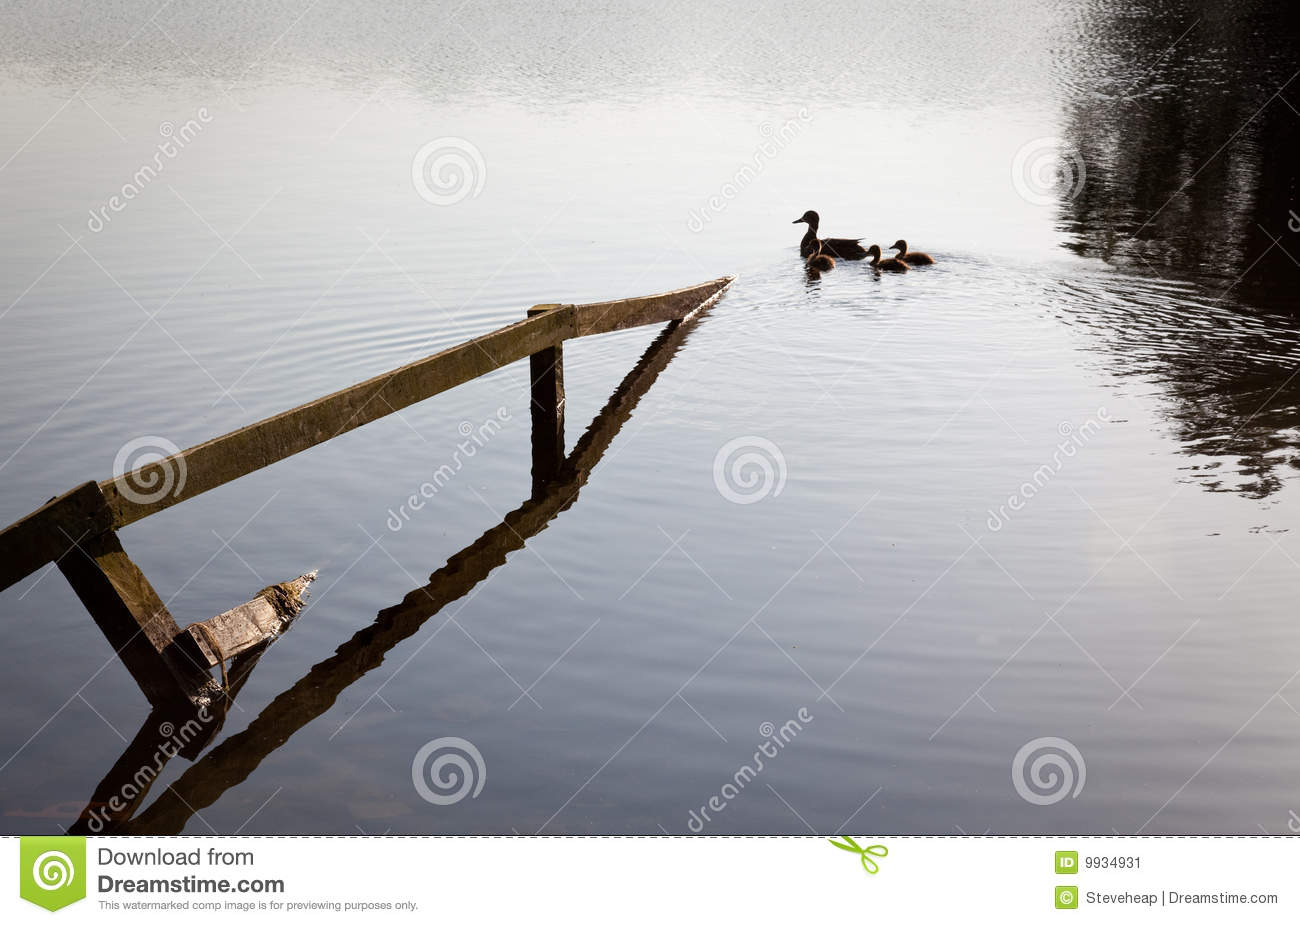 Ducks and ducklings swim past submerged fence